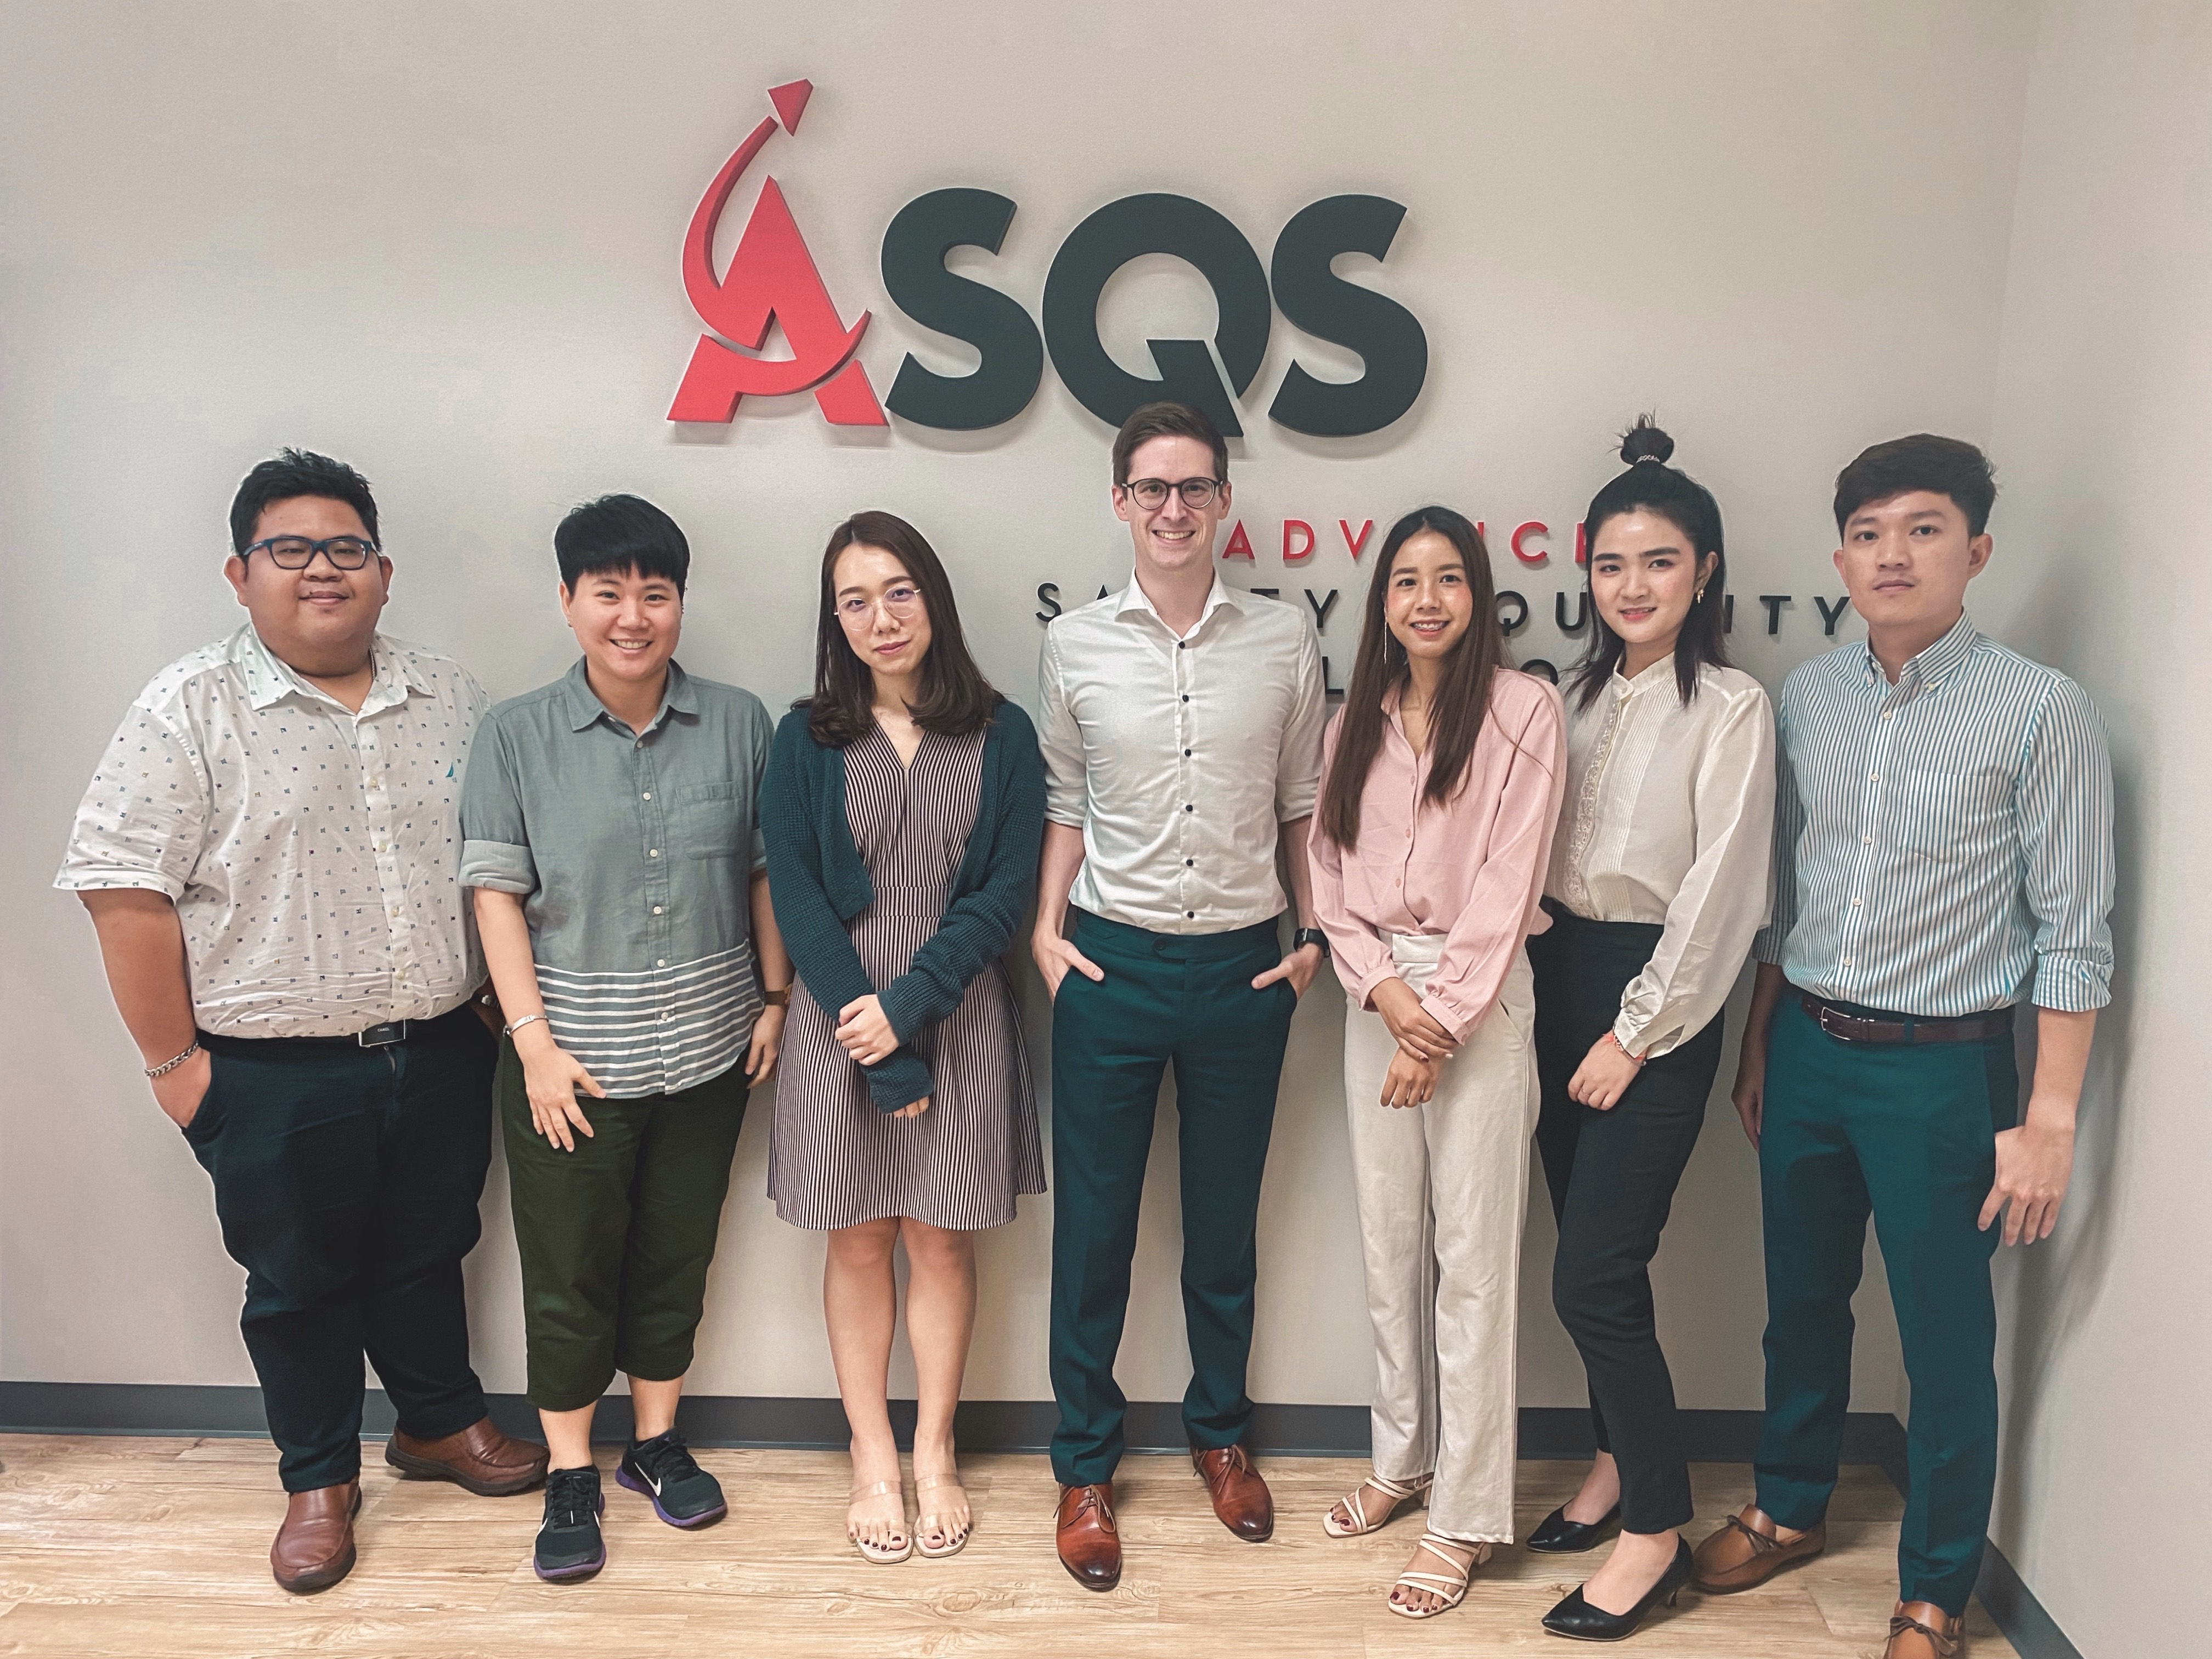 ASQS Bangkok, IQSMS, Aviation Safety, SMS, ASQS